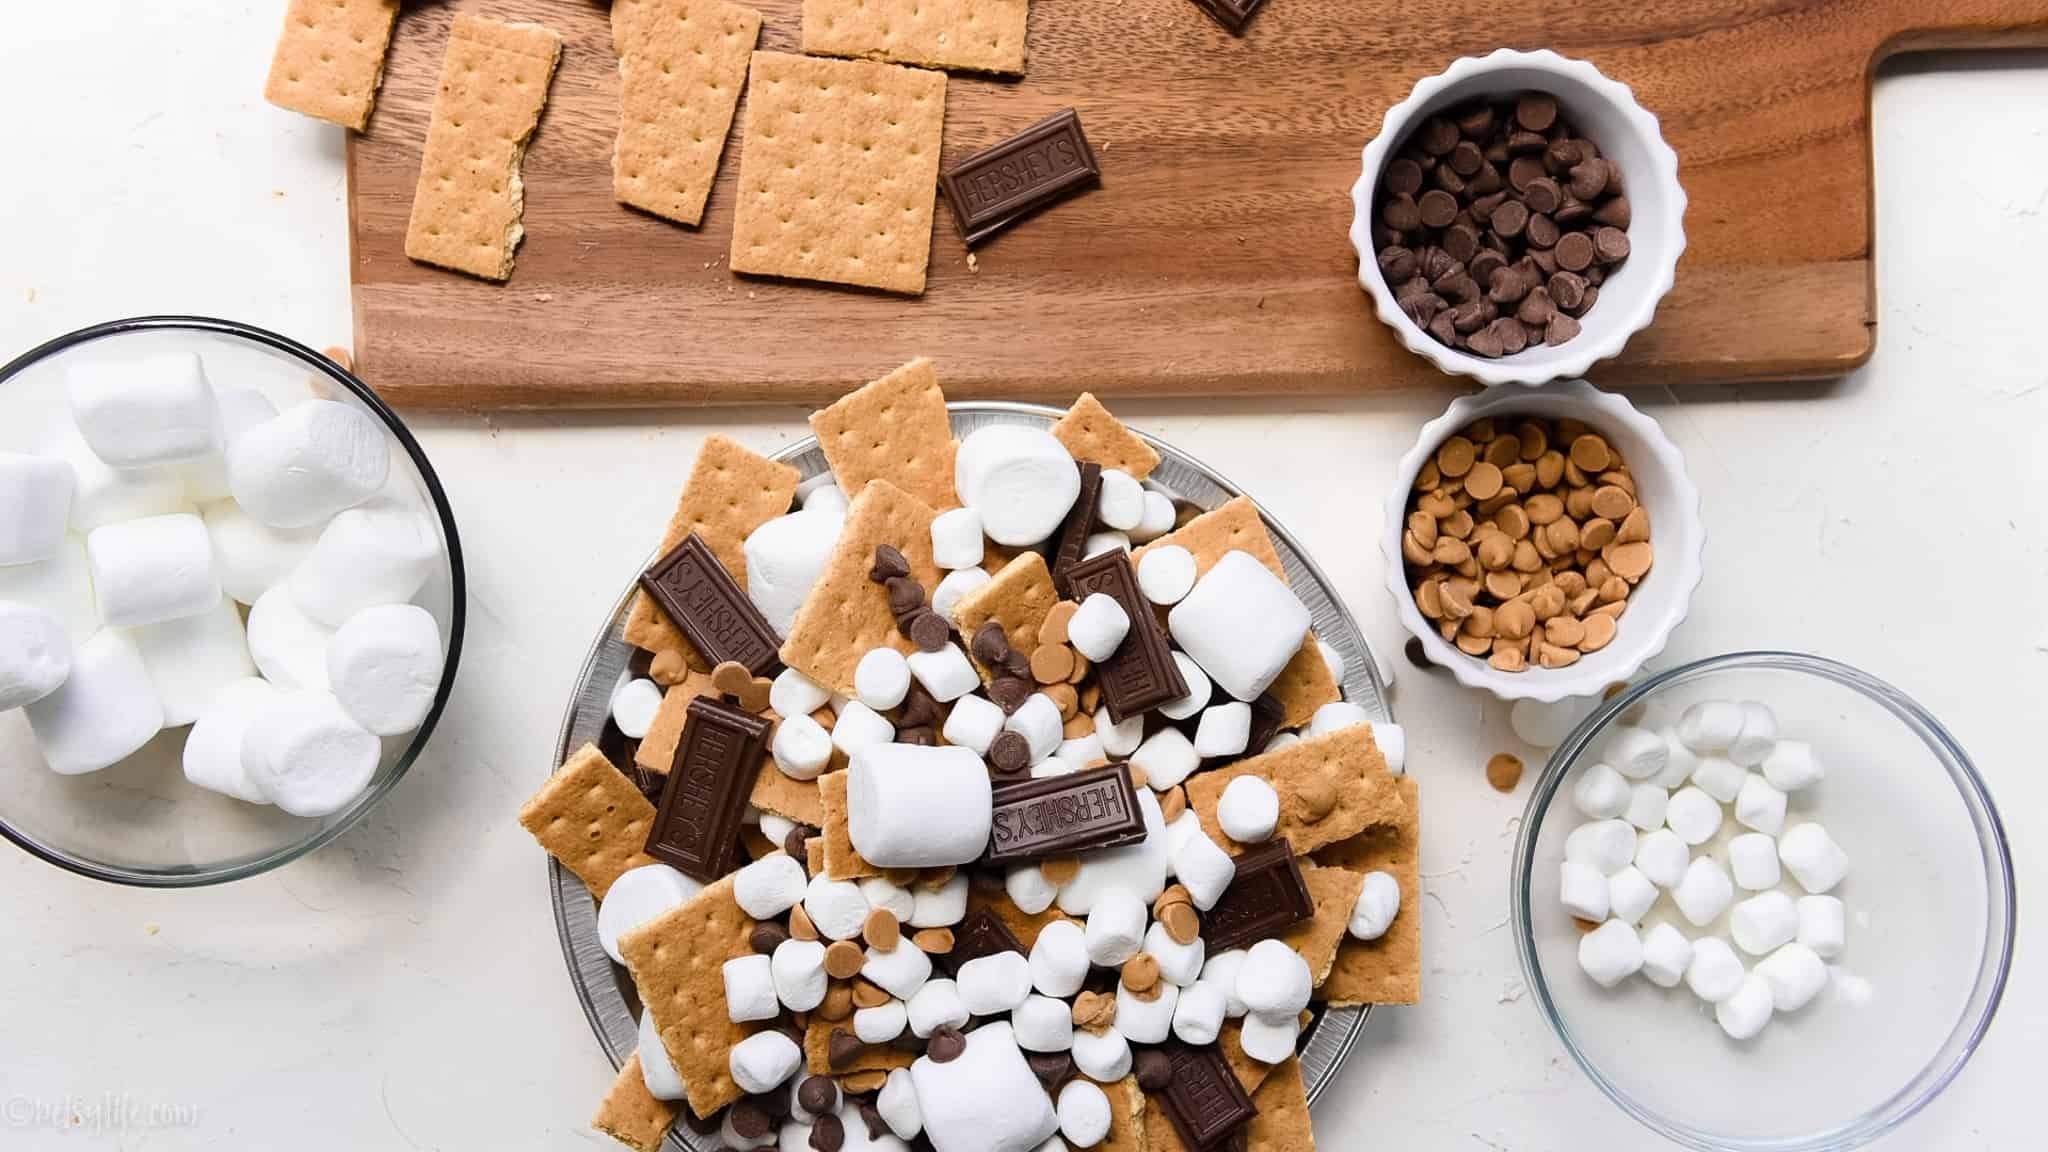 preparing smores nachos. Bowls of chocolate chips, marshmallow and graham crackers on a board